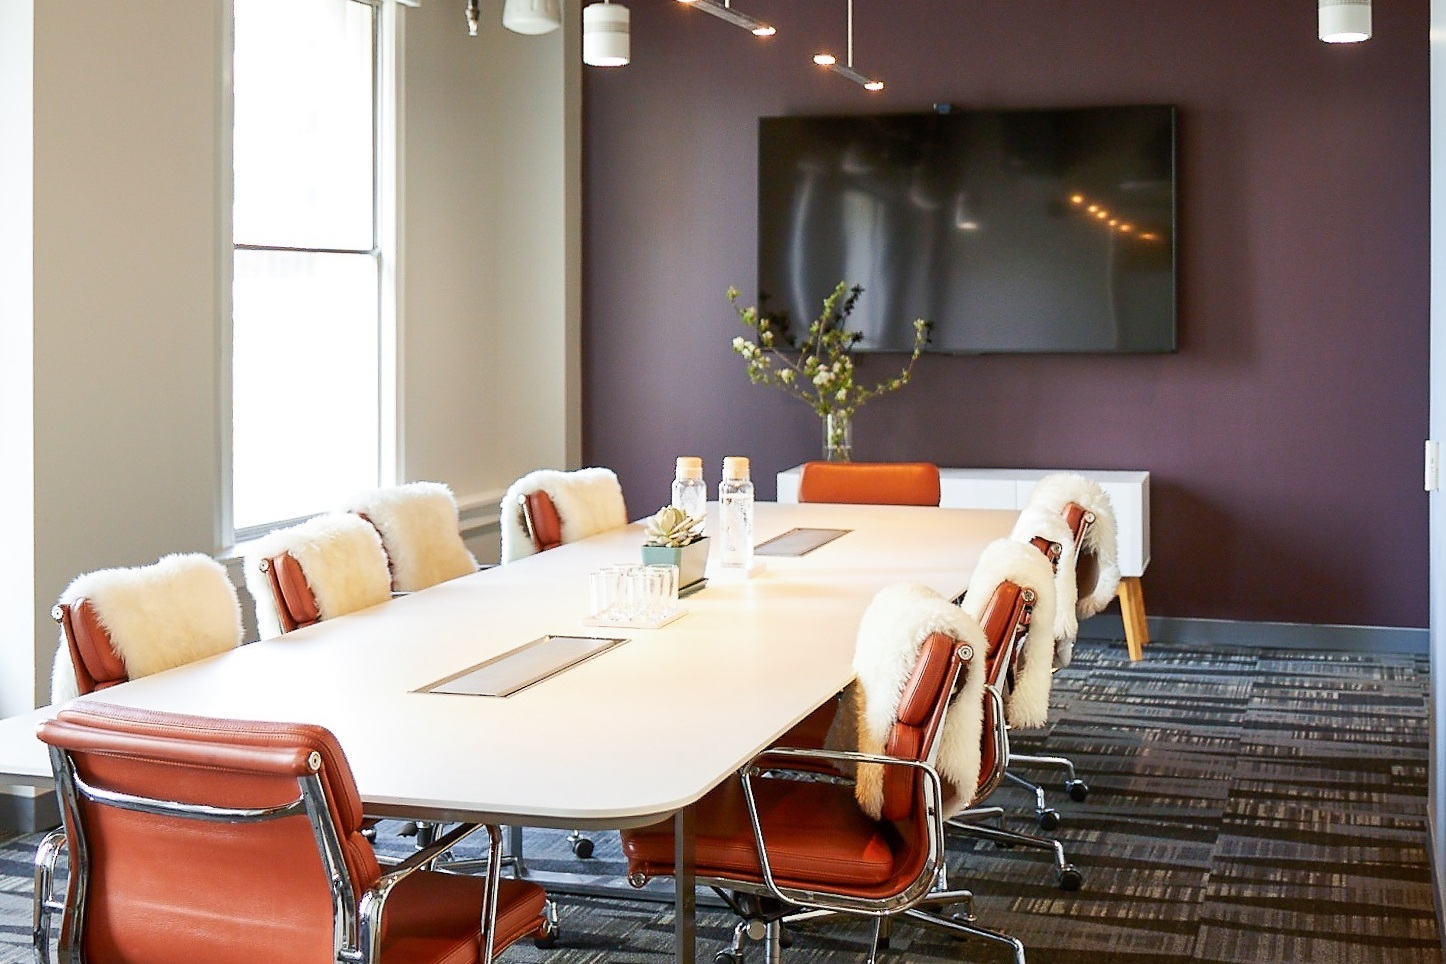 Conference Rooms - Meet with one person or eighteen in our three fully equipped meeting rooms.